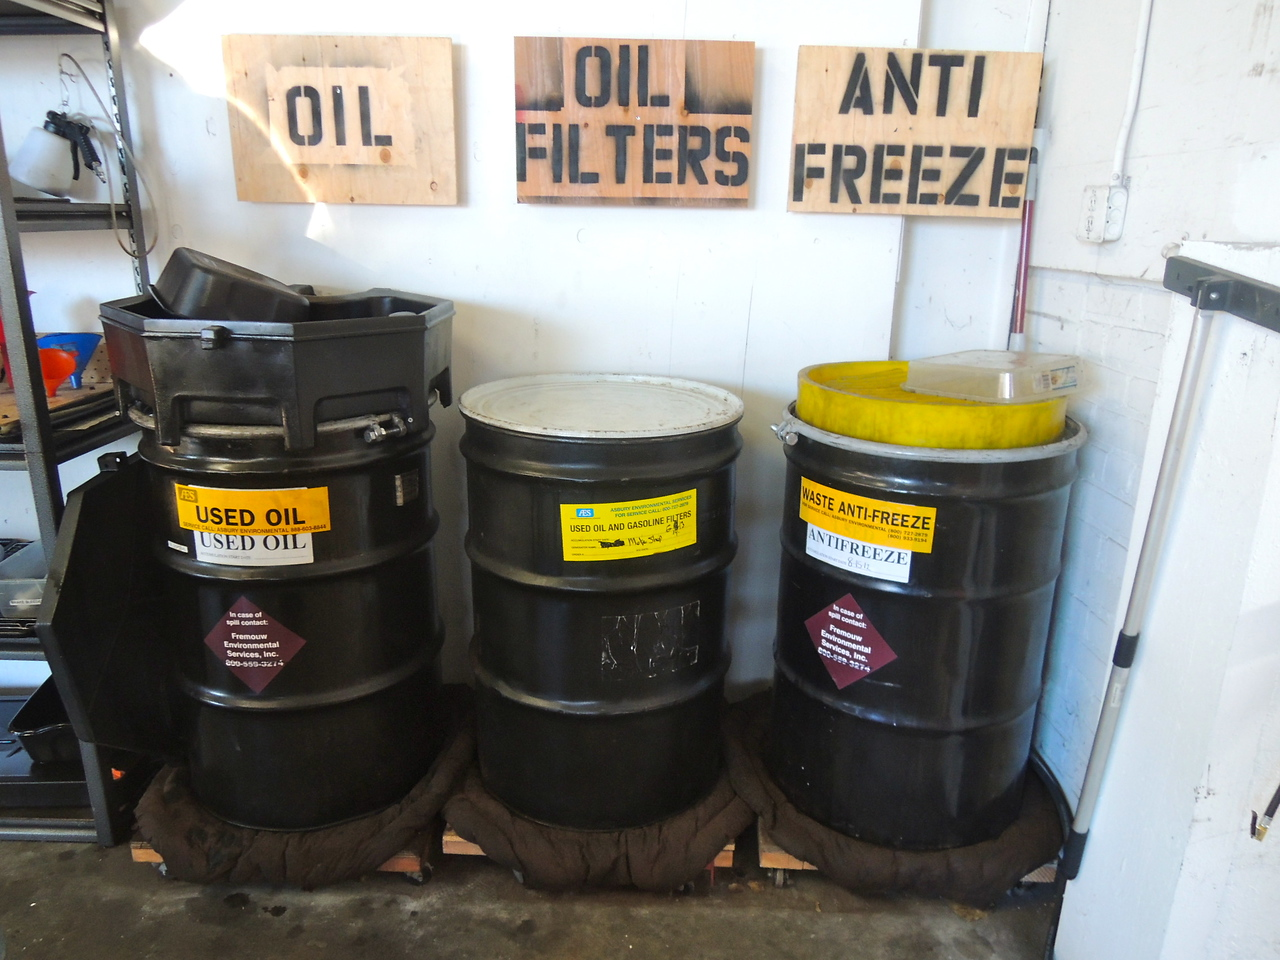 Recycling/Managing maintenance byproducts is important